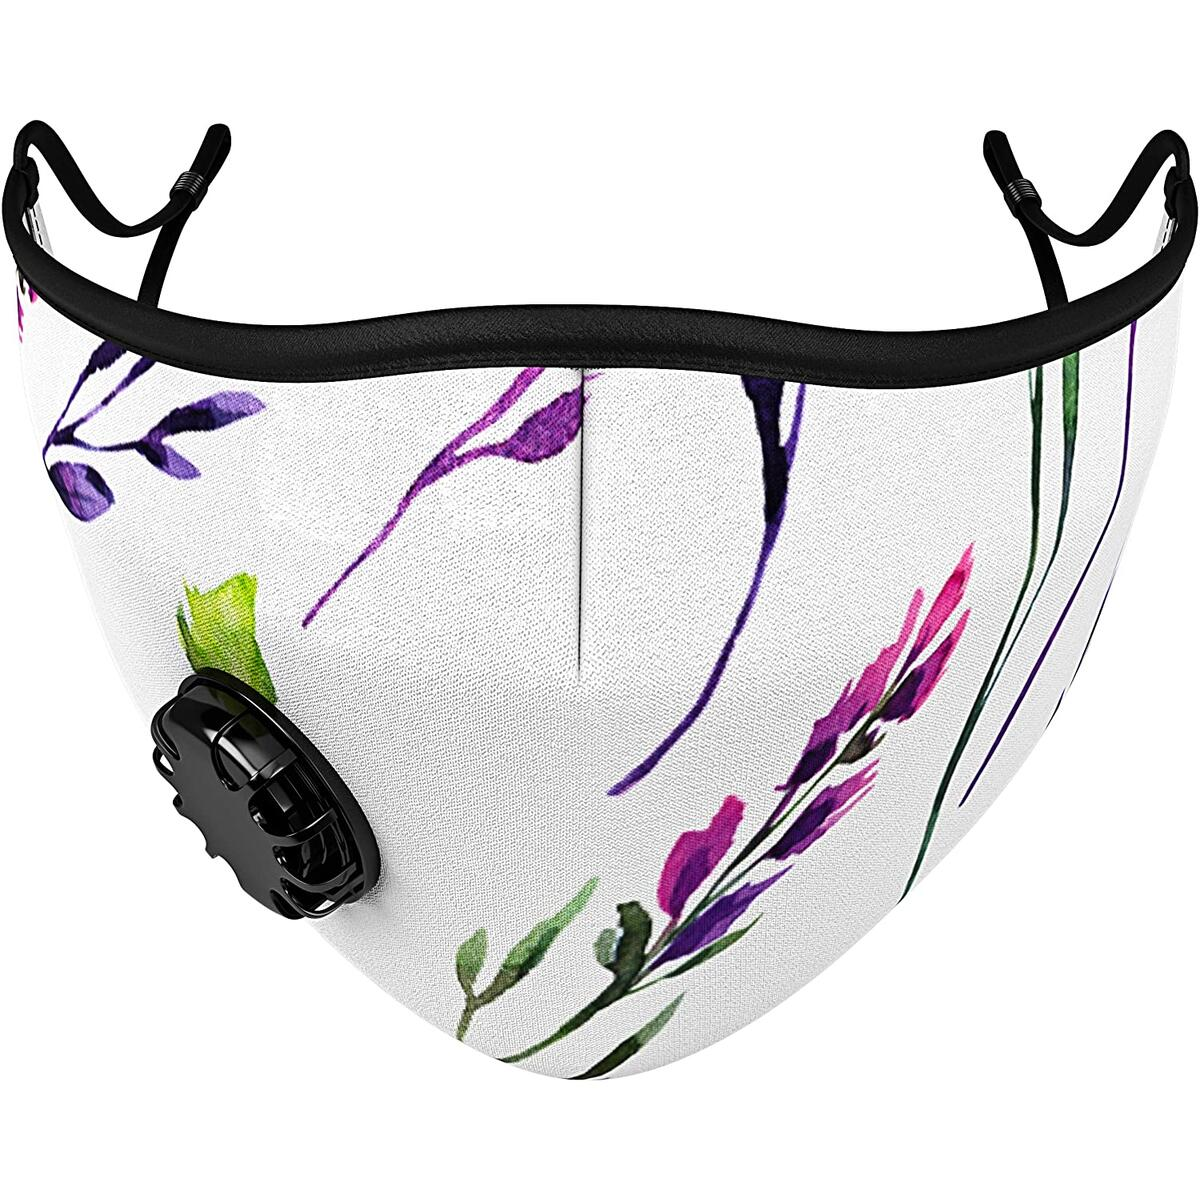 Grove Mask Face Mask w/ 7X PM2.5 Filters - Reusable Cloth Face Mask for Pollen, Smoke, Dust, Allergen - Perfect for Cycling, Running, Training, Motorcycle (Botanical)…